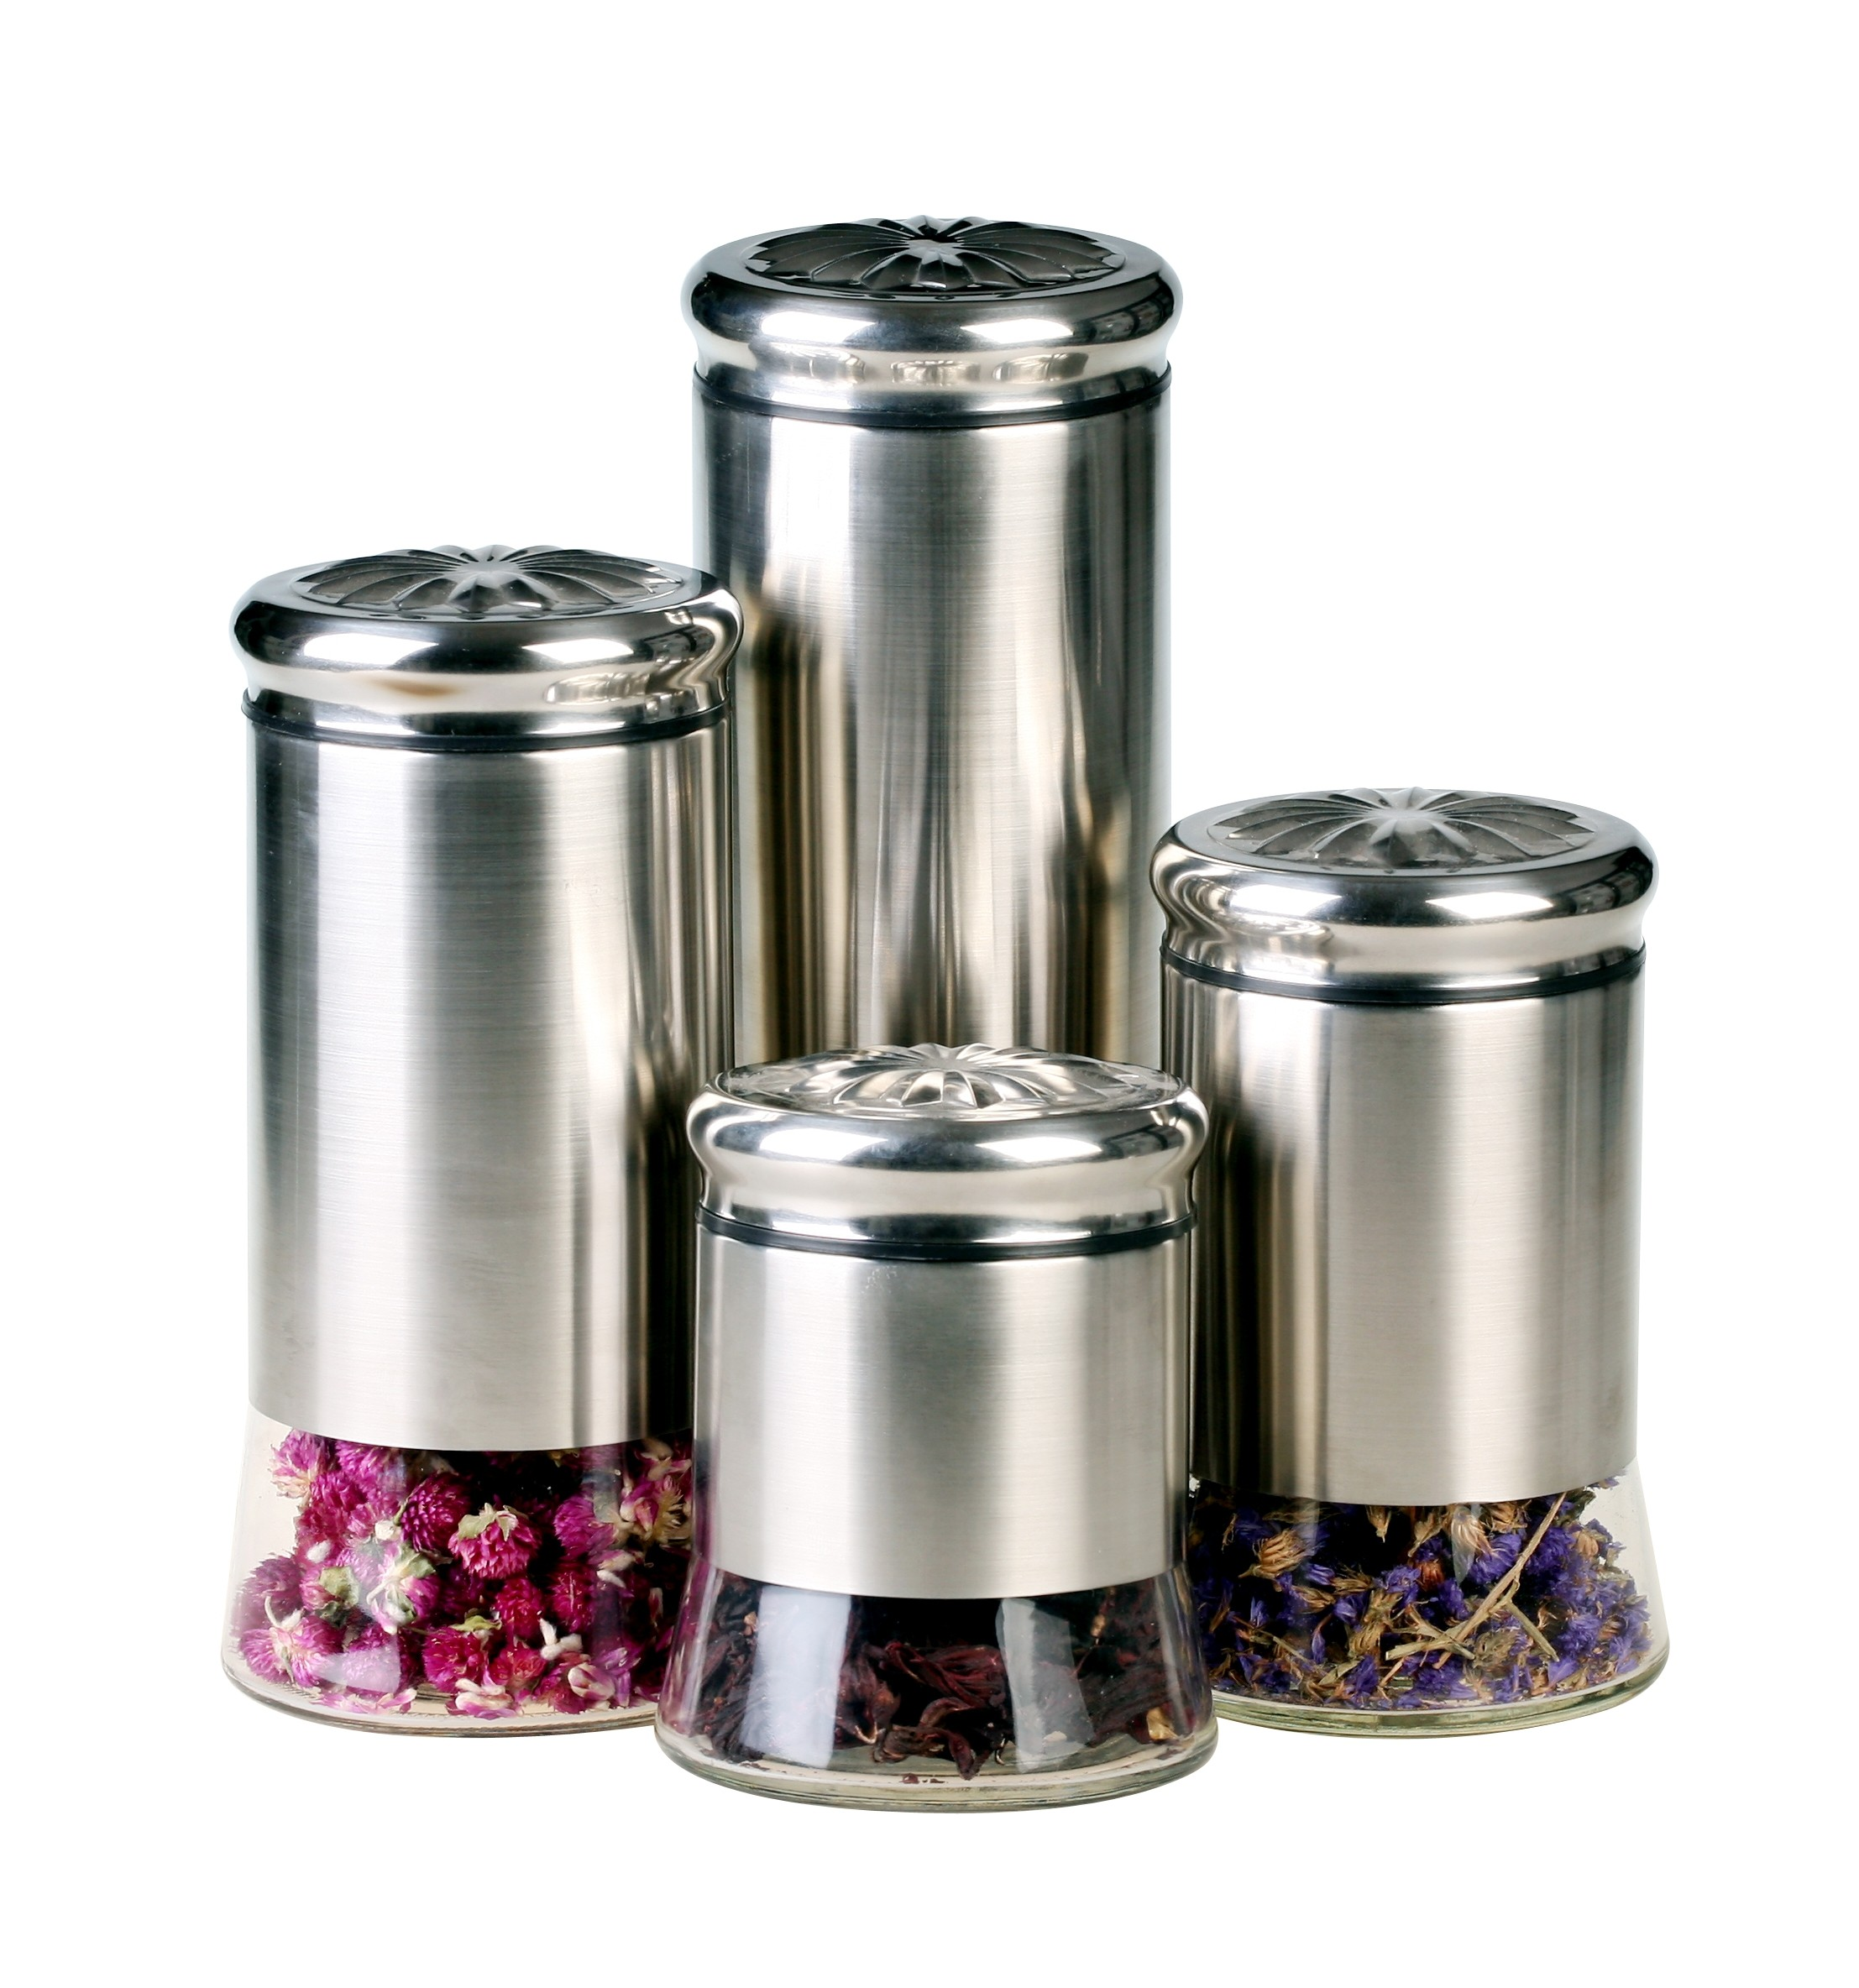 GBS3024 Helix 4 piece Canister Set  Kitchen Canisters